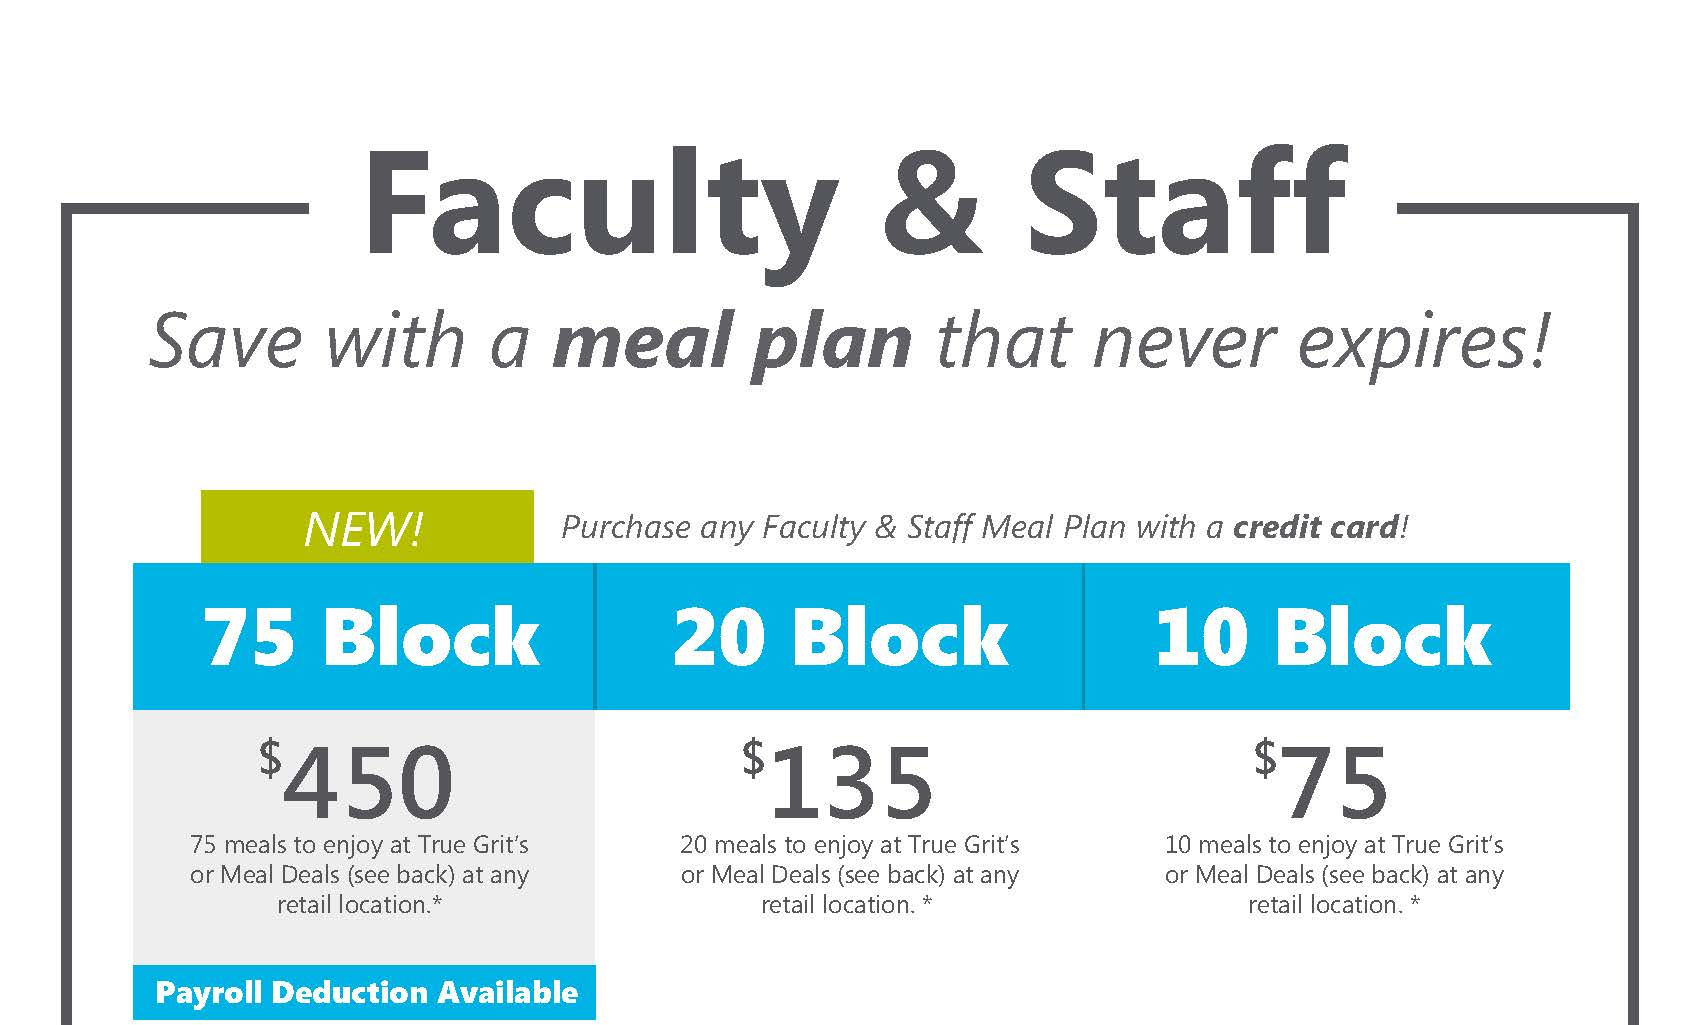 Faculty and Staff Meal Plans